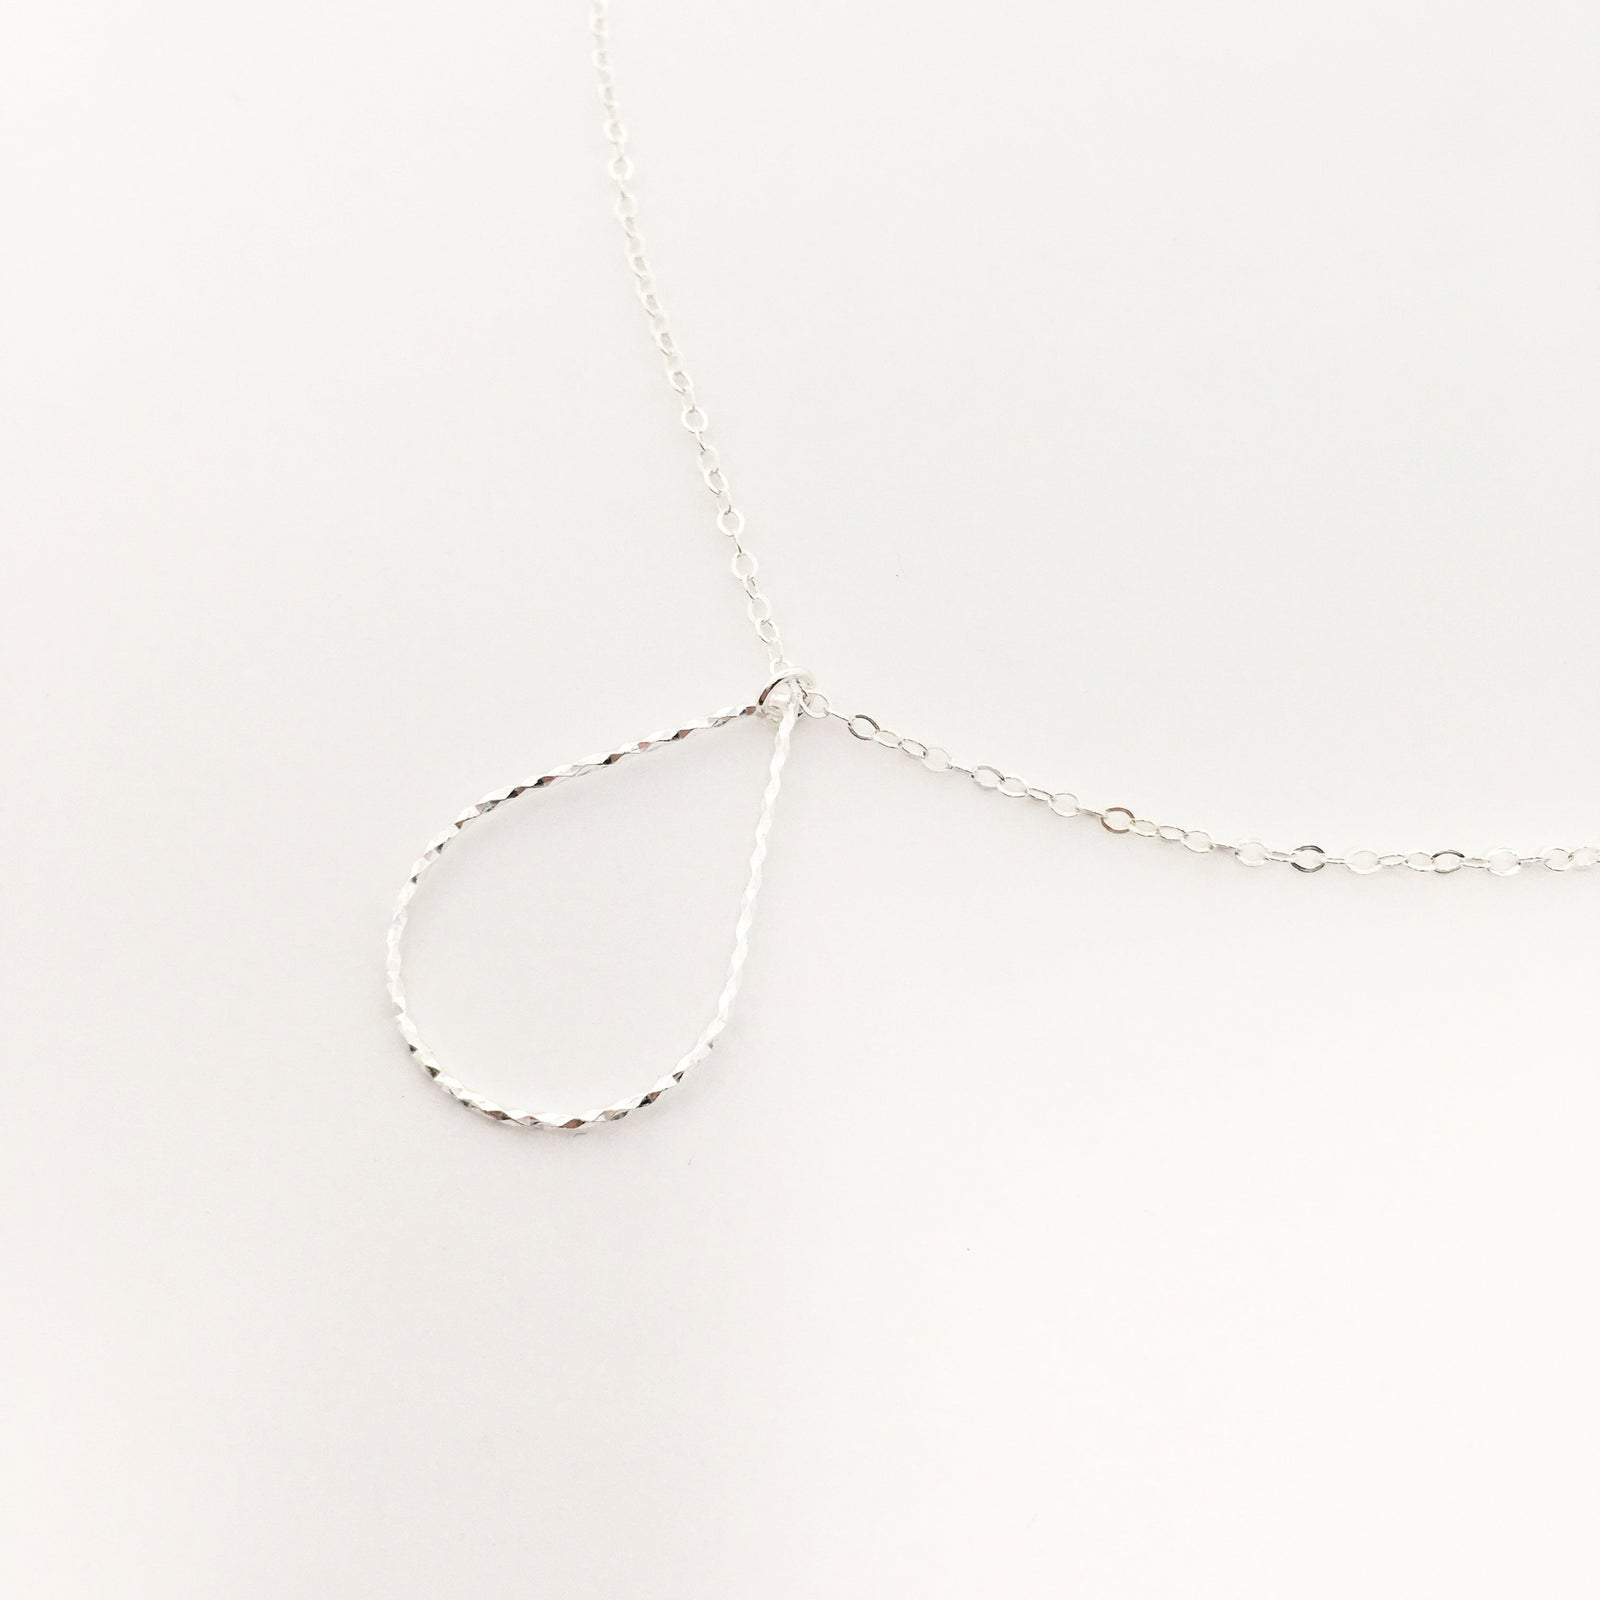 STERLING SILVER TWISTED DROP NECKLACES | SIZE OPTIONS